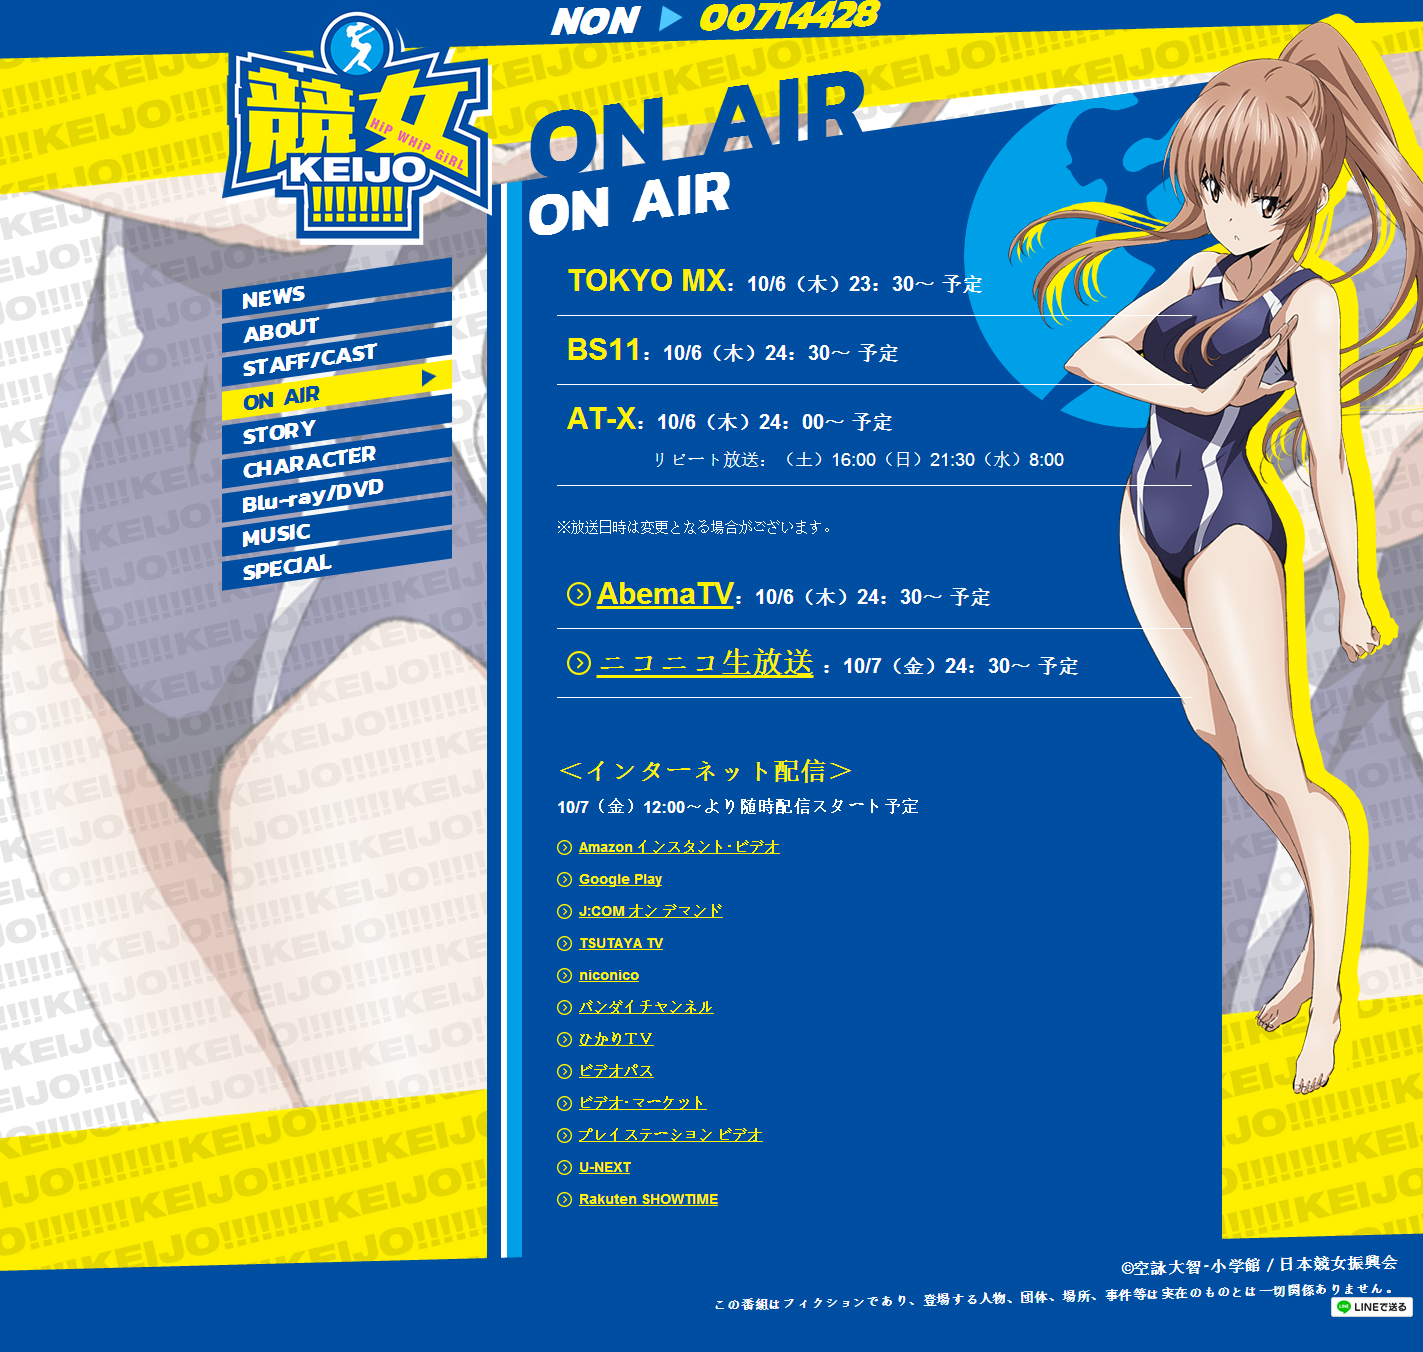 ON AIR -TVアニメ『競女!!!!!!!!』公式サイト-.png